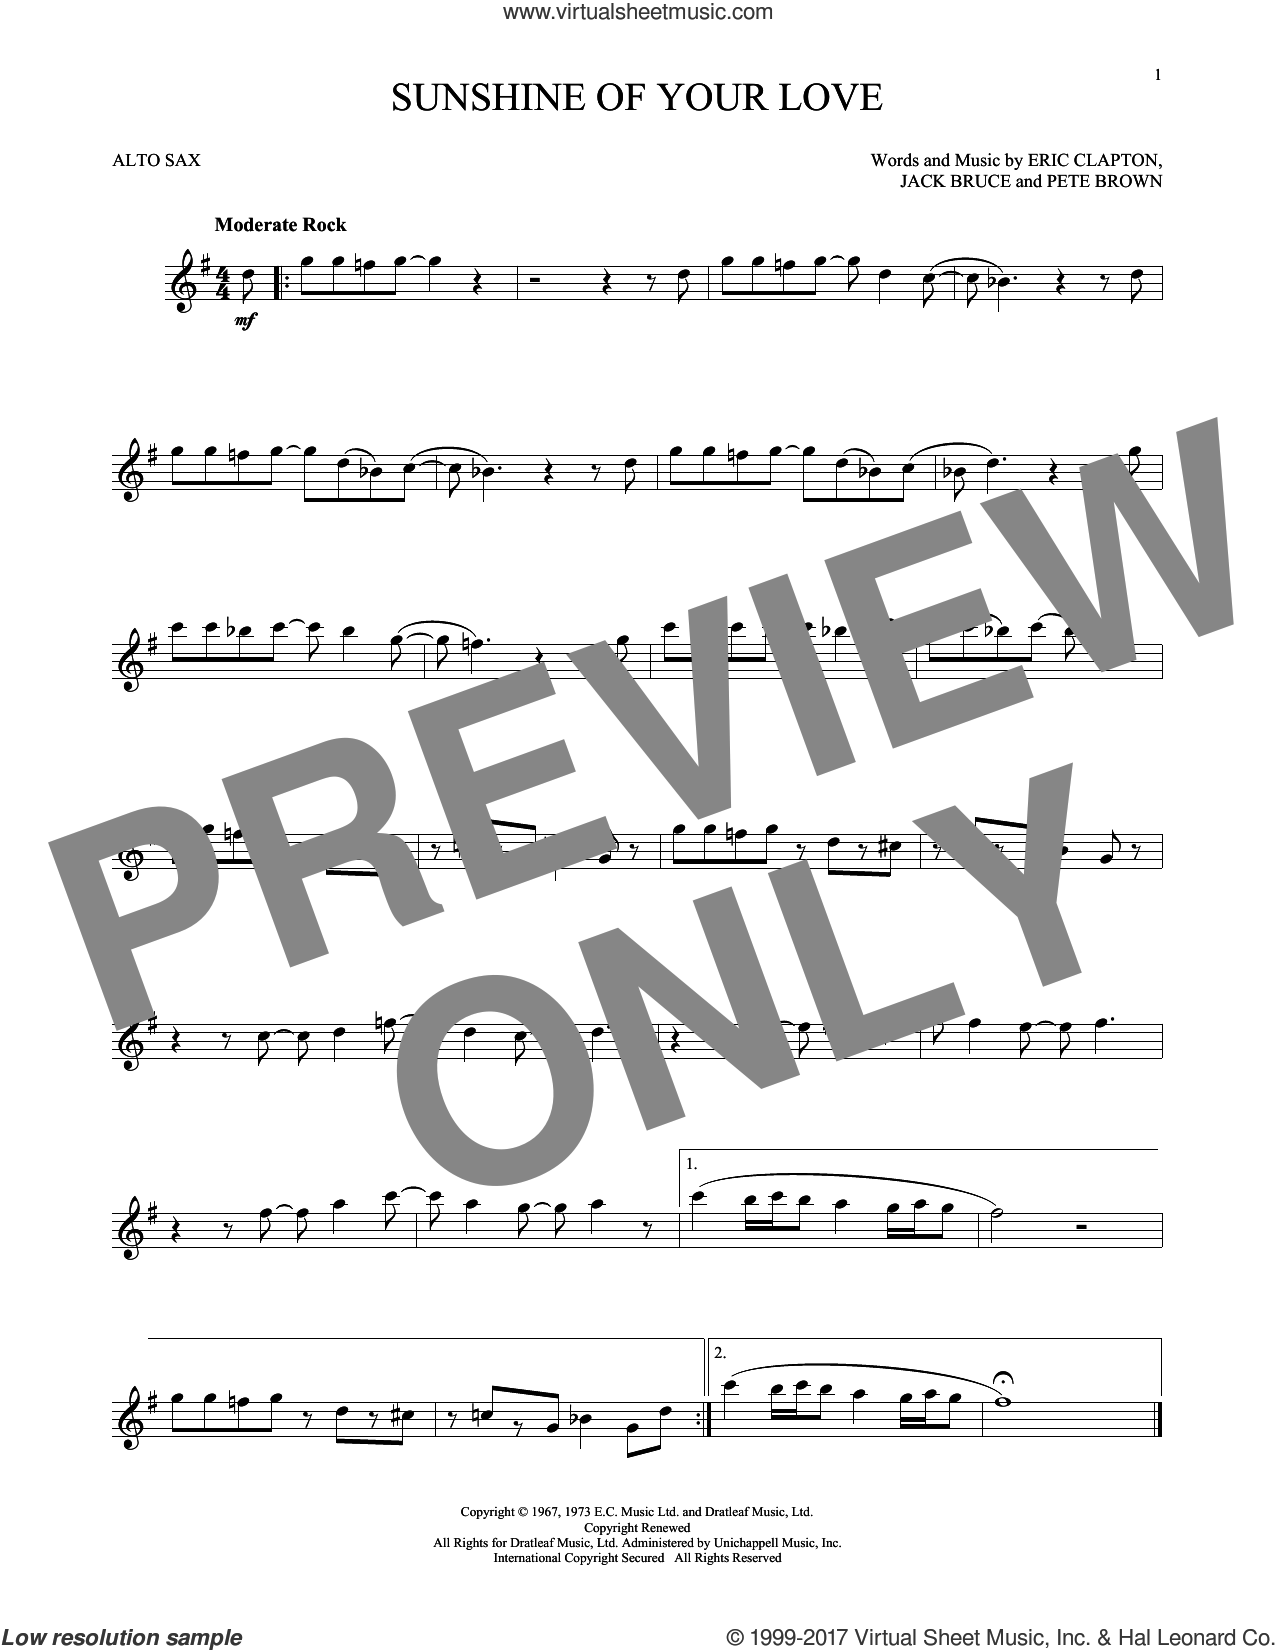 Sunshine Of Your Love sheet music for alto saxophone solo by Cream, Eric Clapton, Jack Bruce and Pete Brown, intermediate skill level